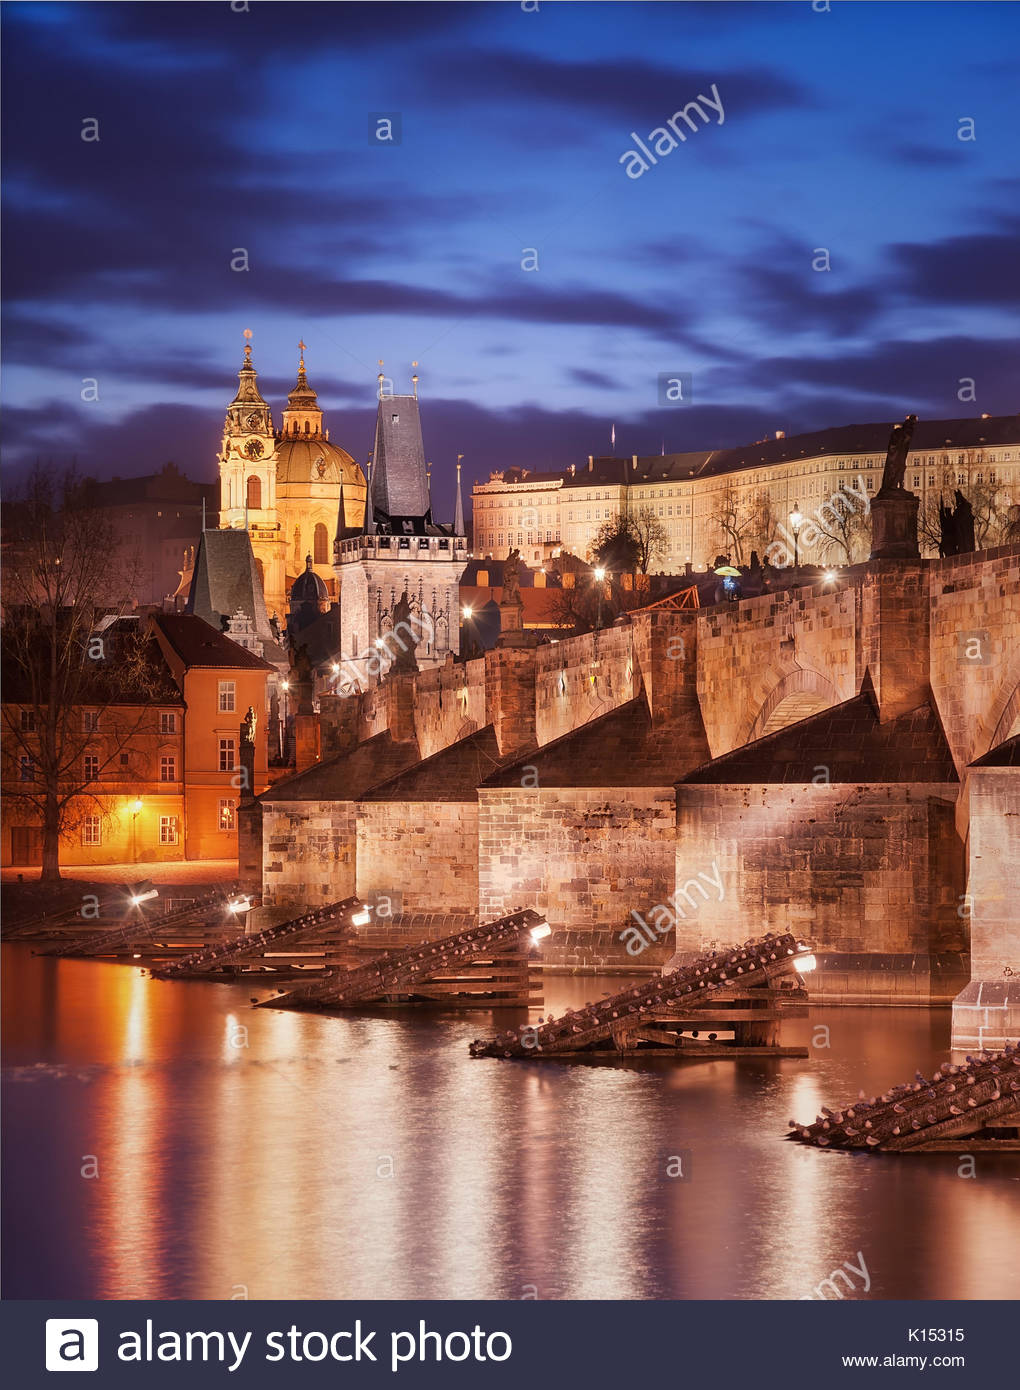 Charles bridge and St. Vitus cathedral view during sunset, Prague, Czech republic - Stock Image